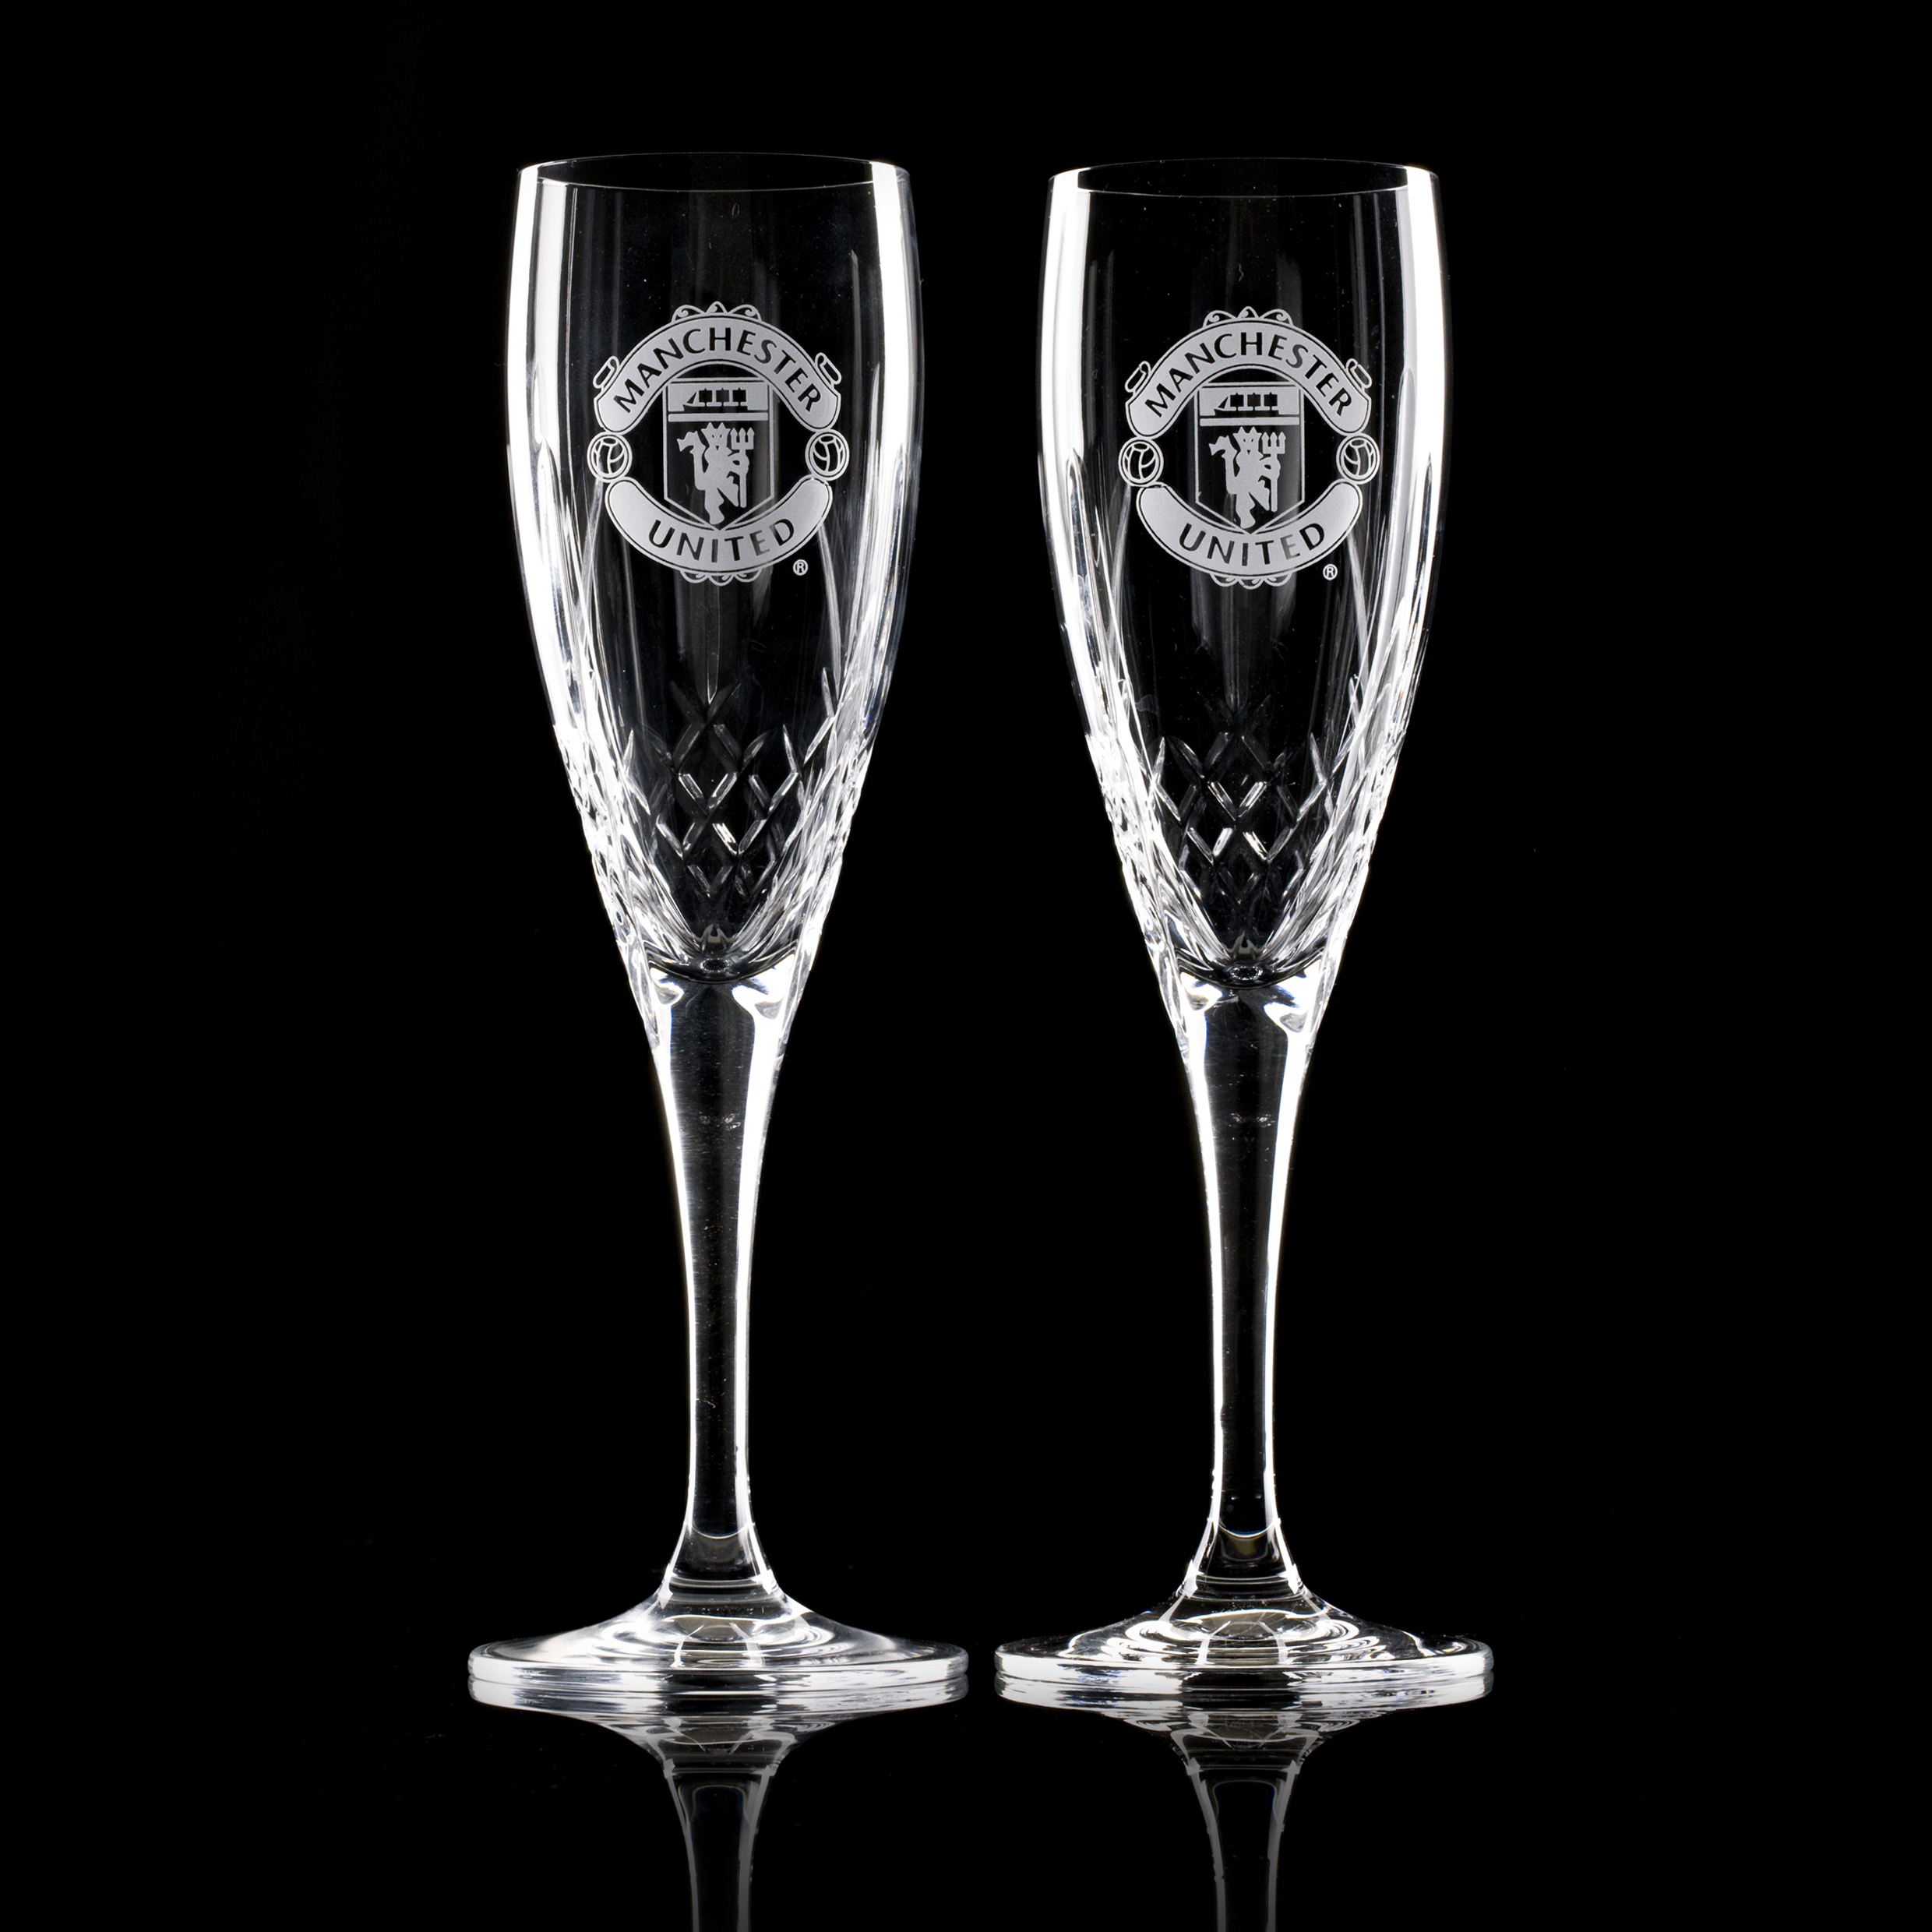 Manchester United Mayfair Crystallite Champagne Flute - Pair